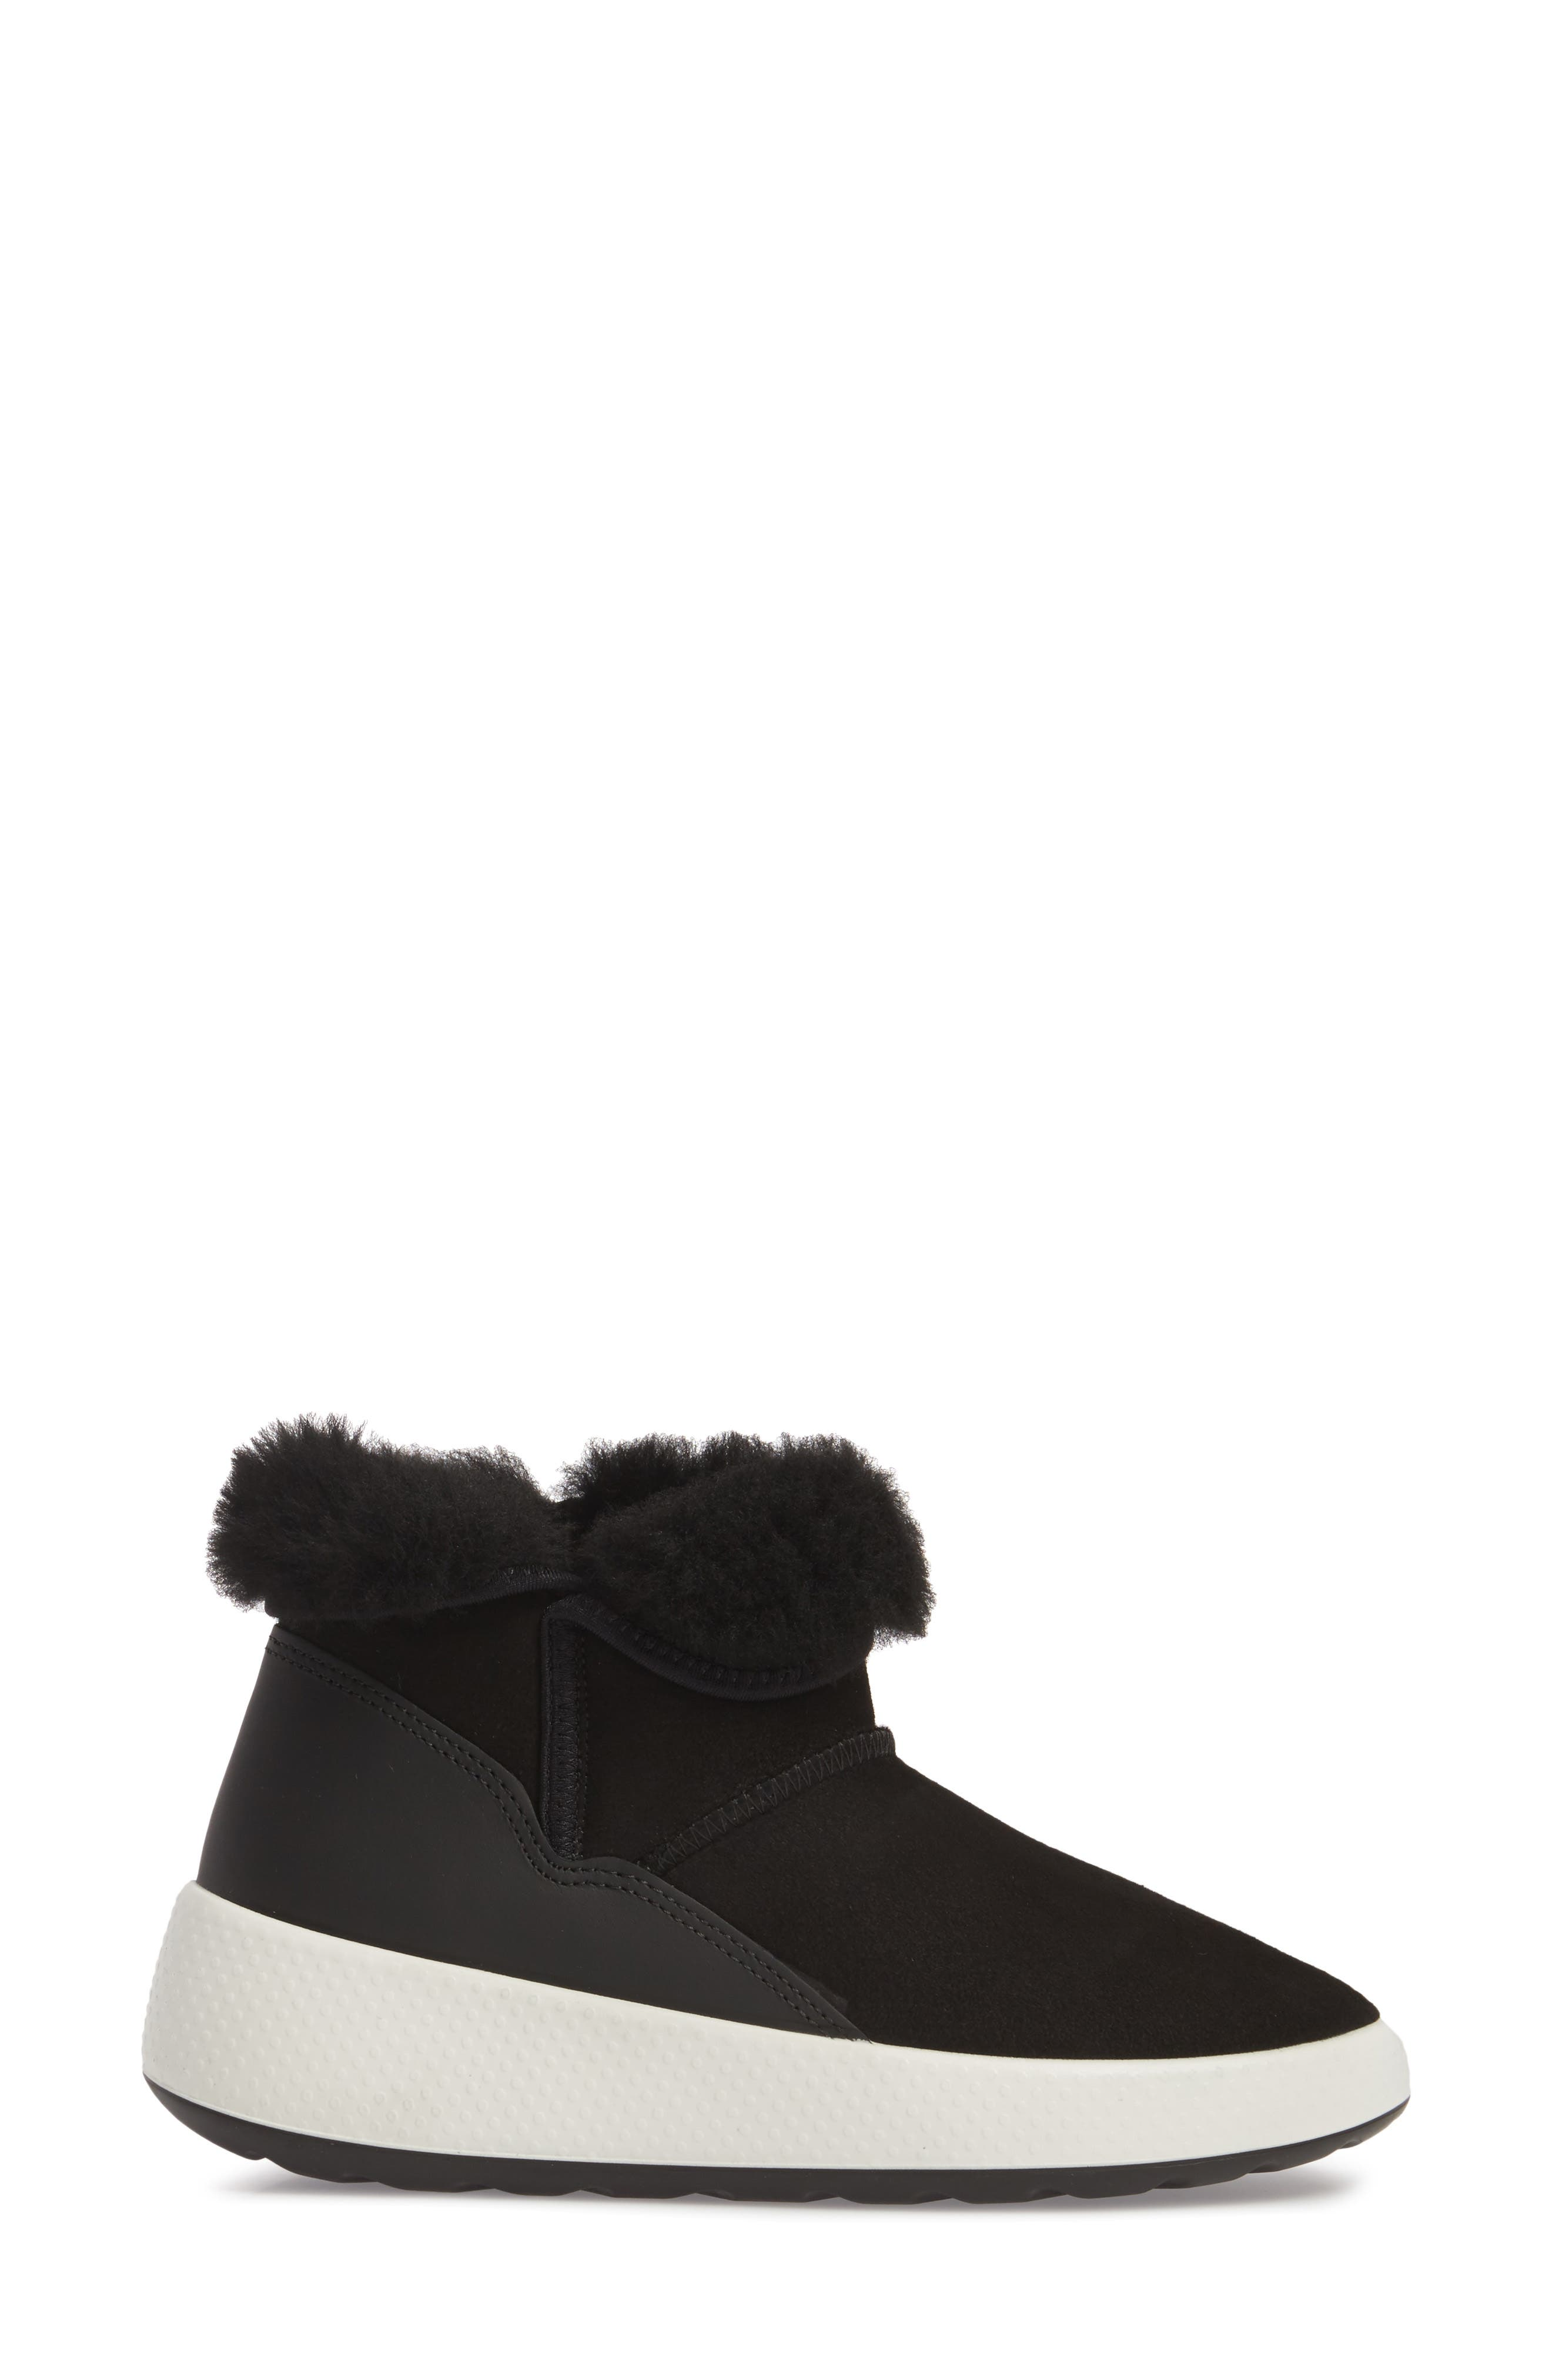 Ukiuk Genuine Shearling Boot,                             Alternate thumbnail 3, color,                             001